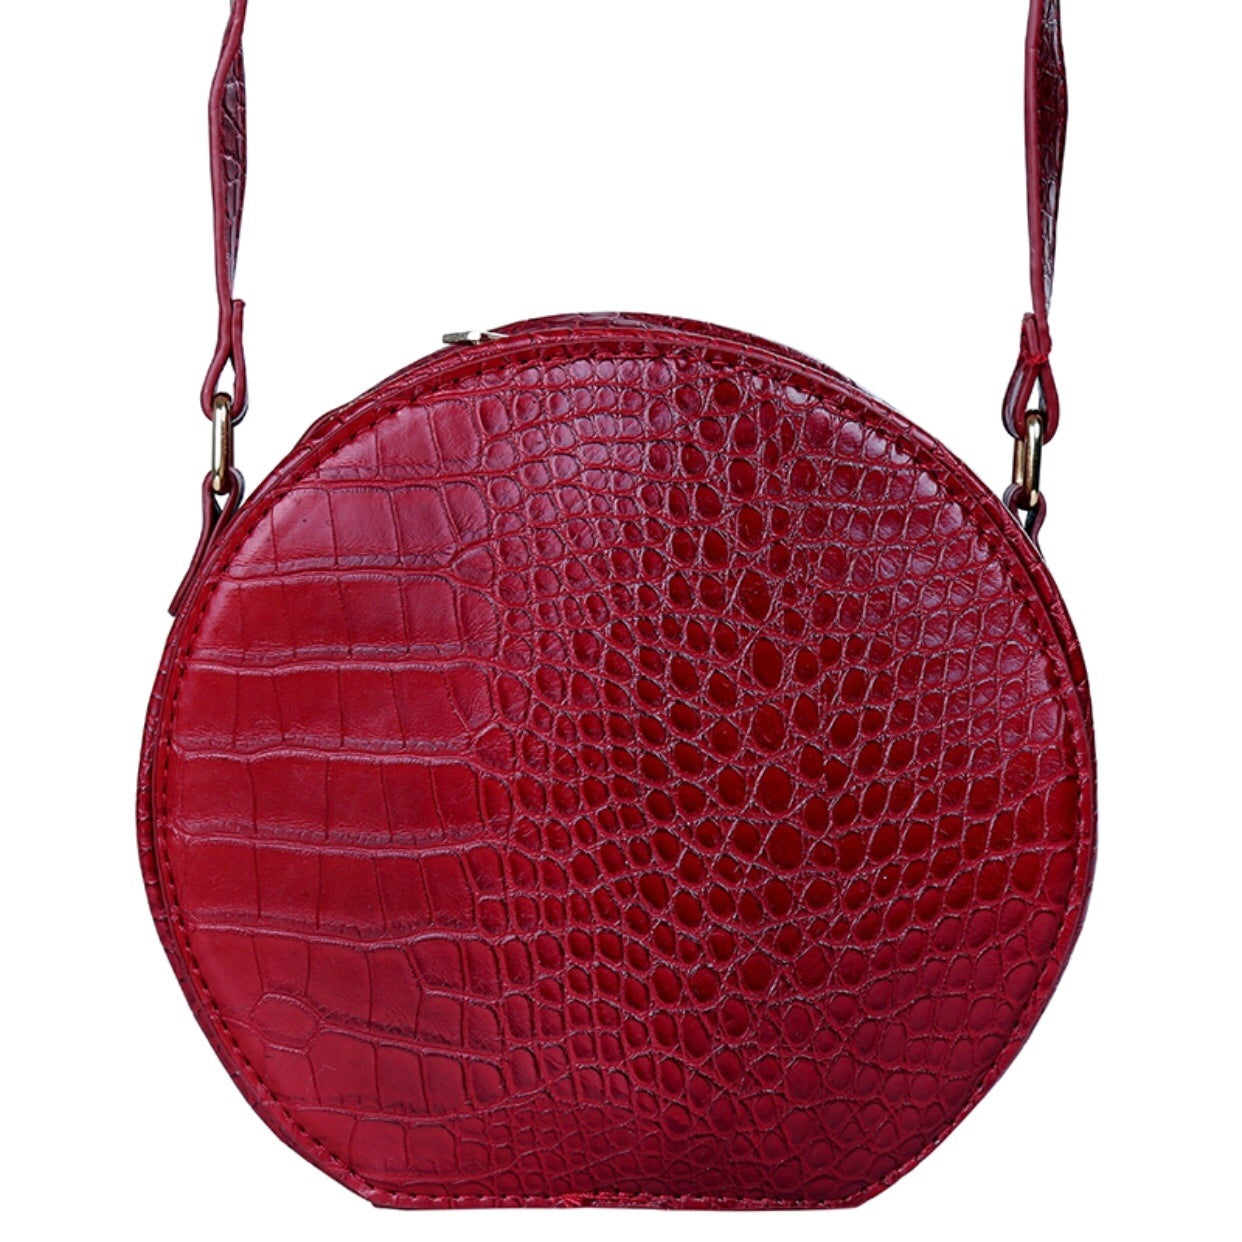 Croco Perfection Bag - LeatherFeather